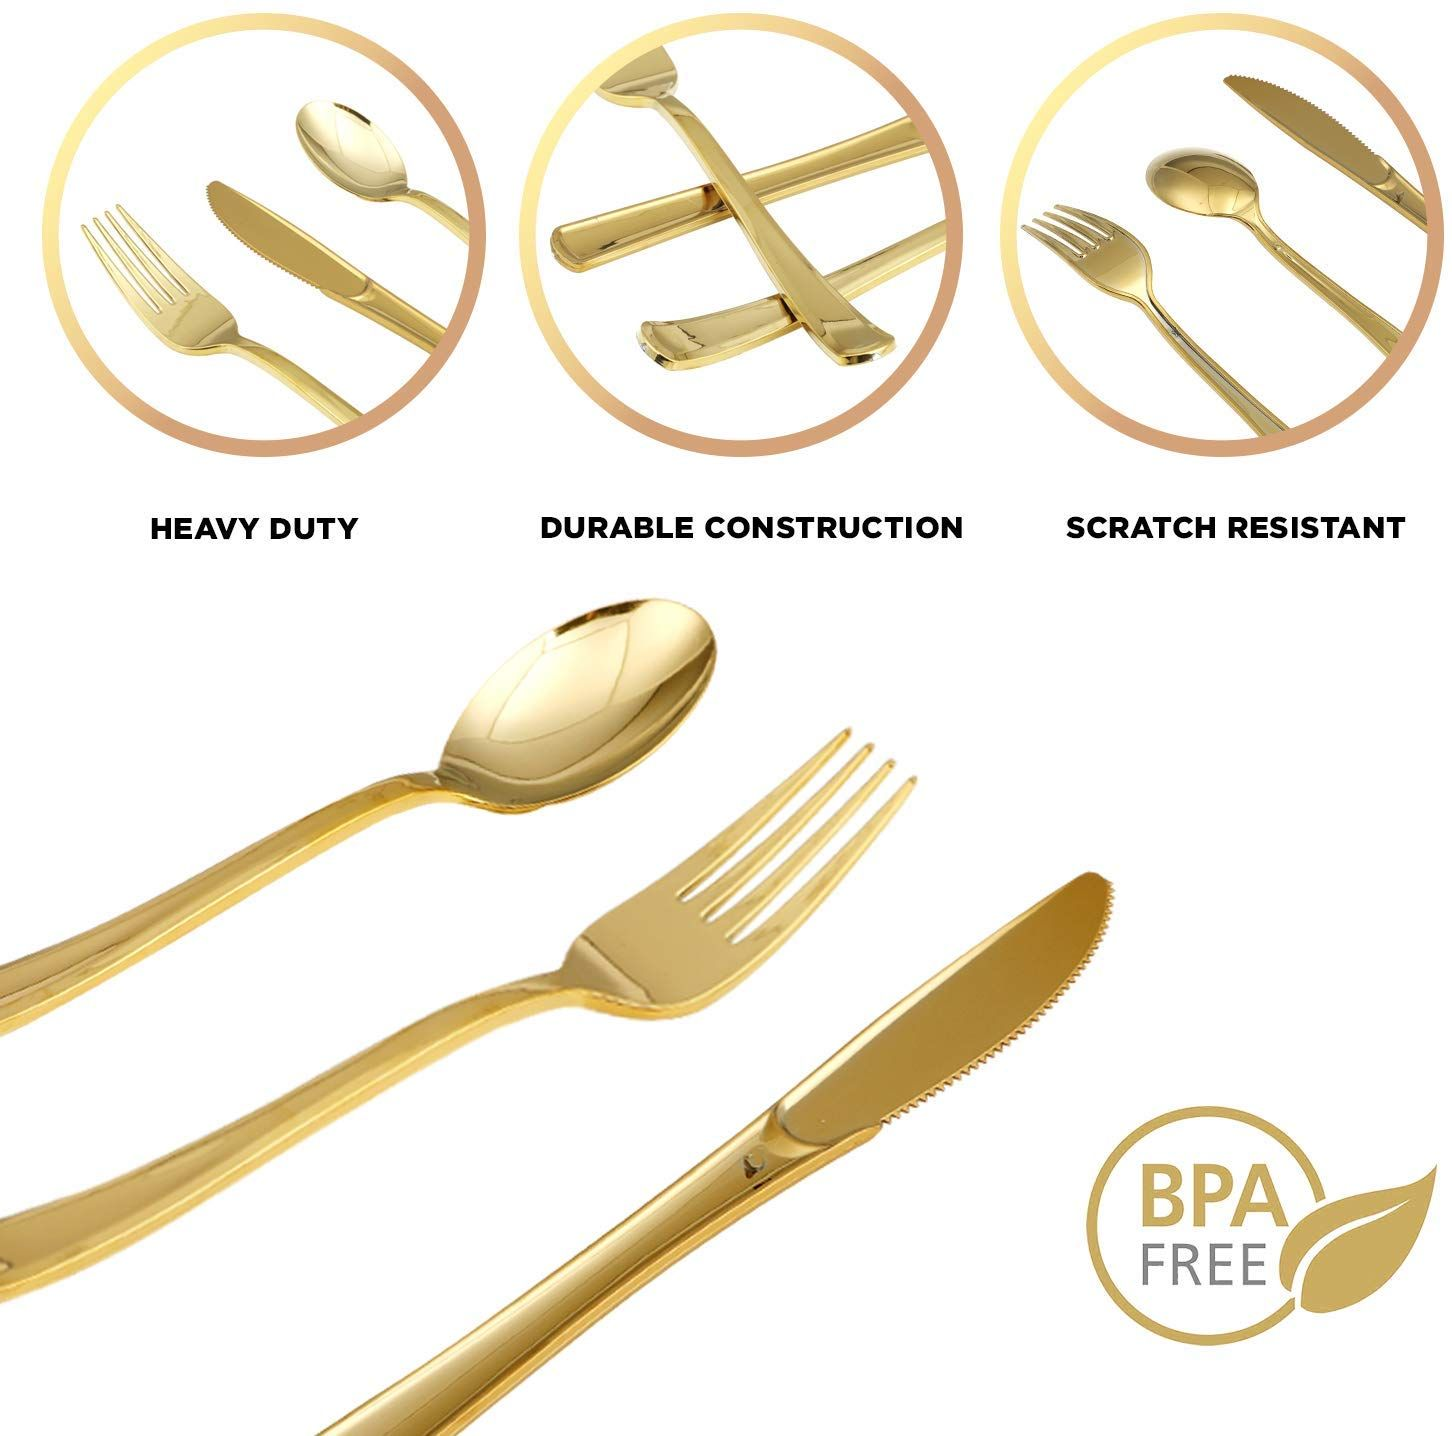 Amazon Com Gold Plastic Silverware Party Utensils Set Heavy Duty Plastic Disposable Cu With Images Plastic Silverware Gold Plastic Silverware Wedding Silverware Display